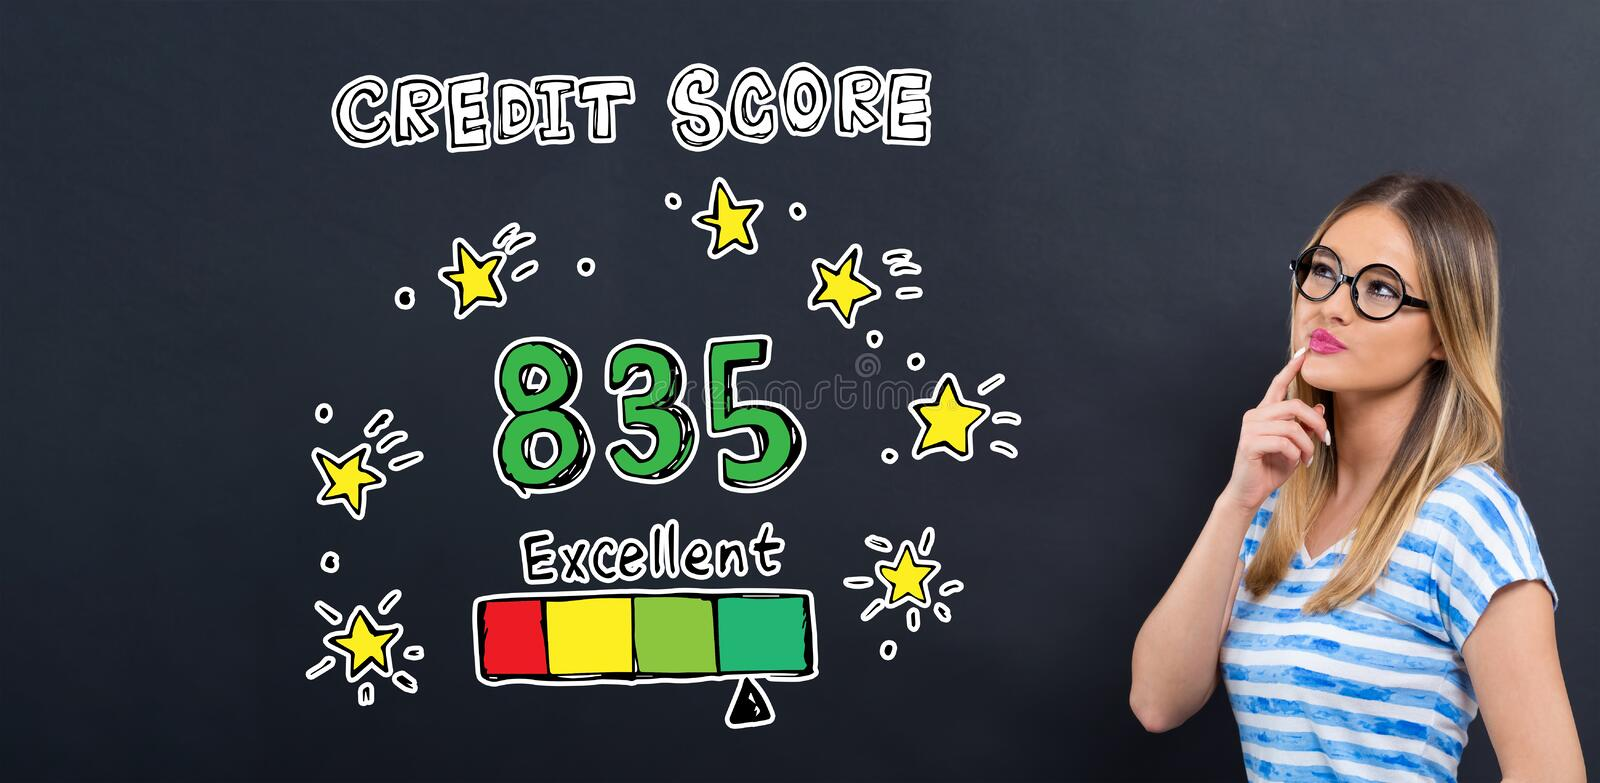 Excellent credit score theme with young woman stock illustration